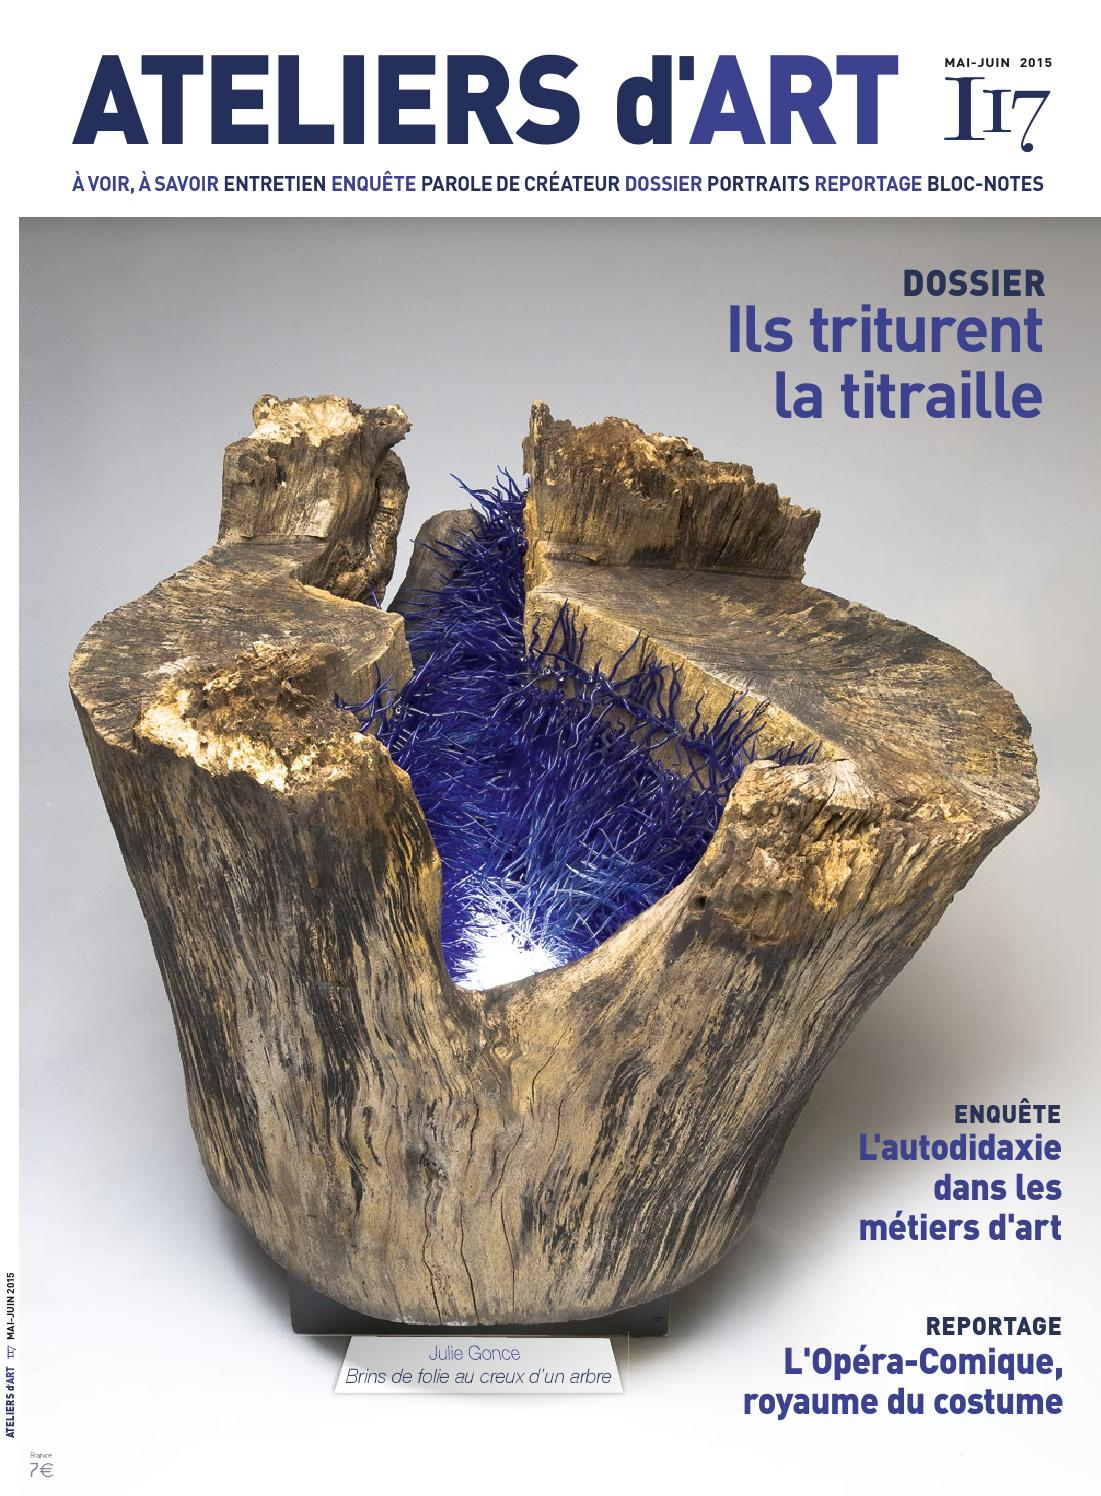 Magazine ateliers d 39 art n 117 by ateliers d 39 art de france issuu - Ateliers d arts de france ...